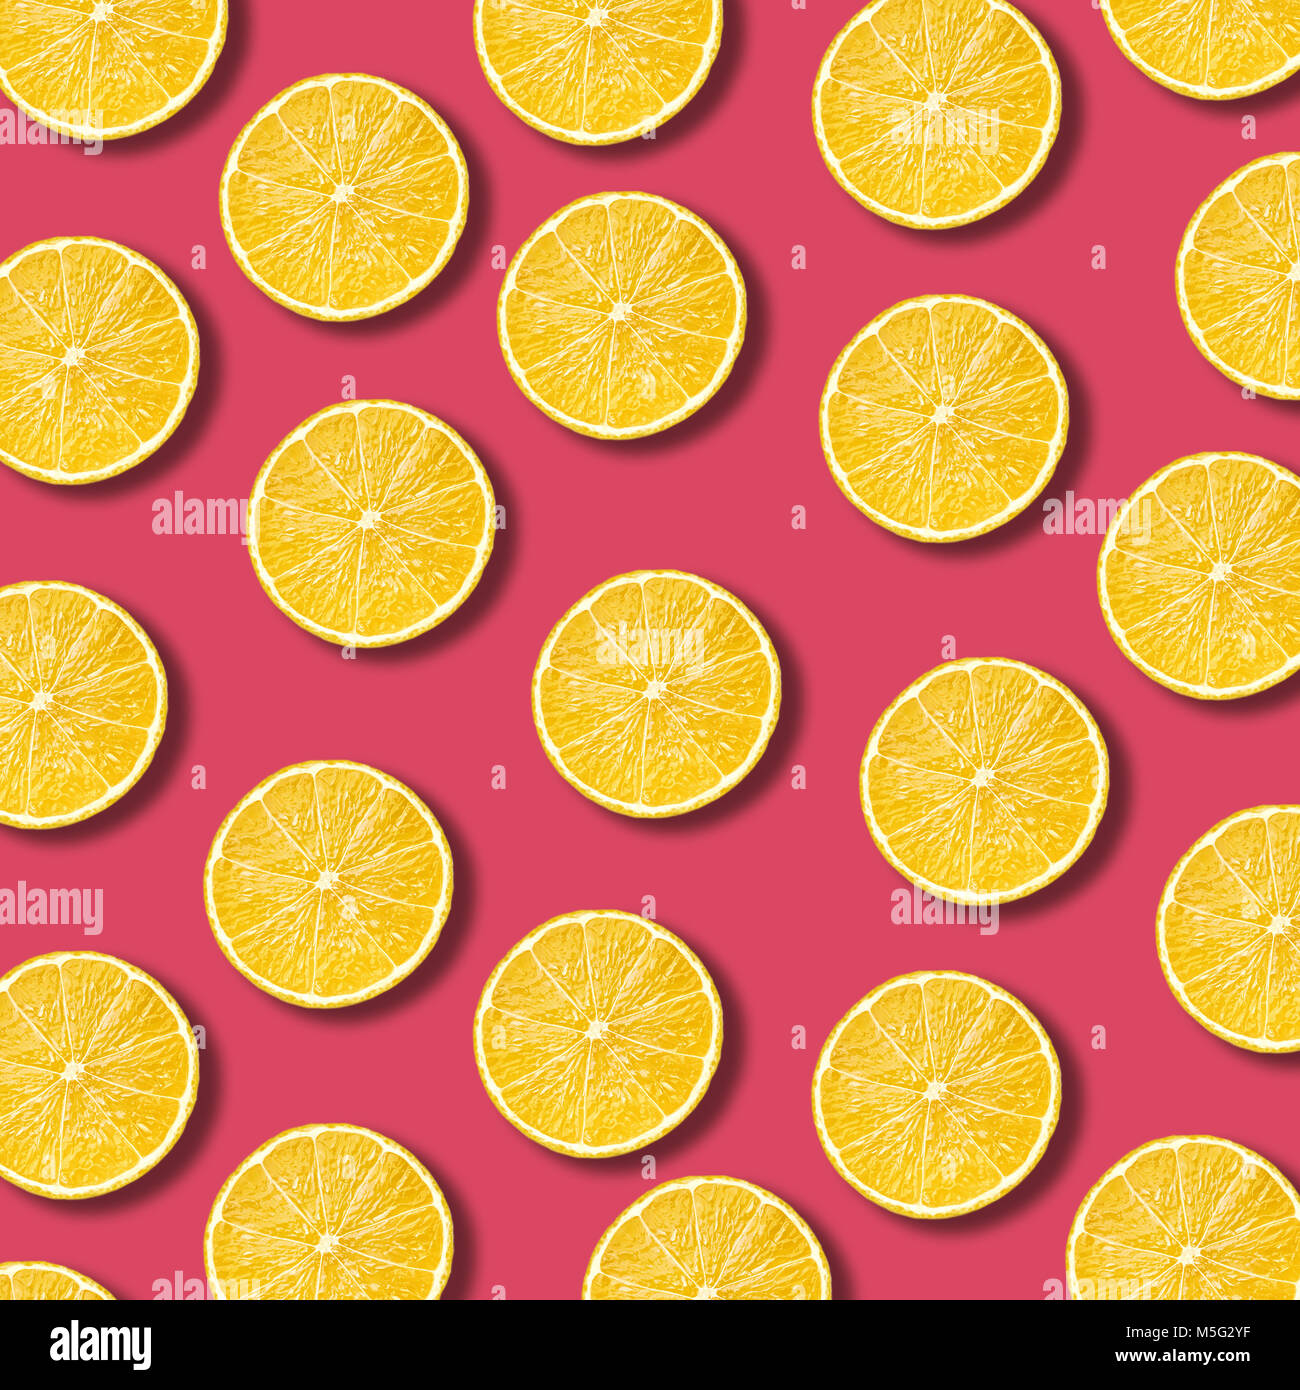 Lemon slices pattern on vibrant pomegranate color background. Minimal flat lay food texture - Stock Image